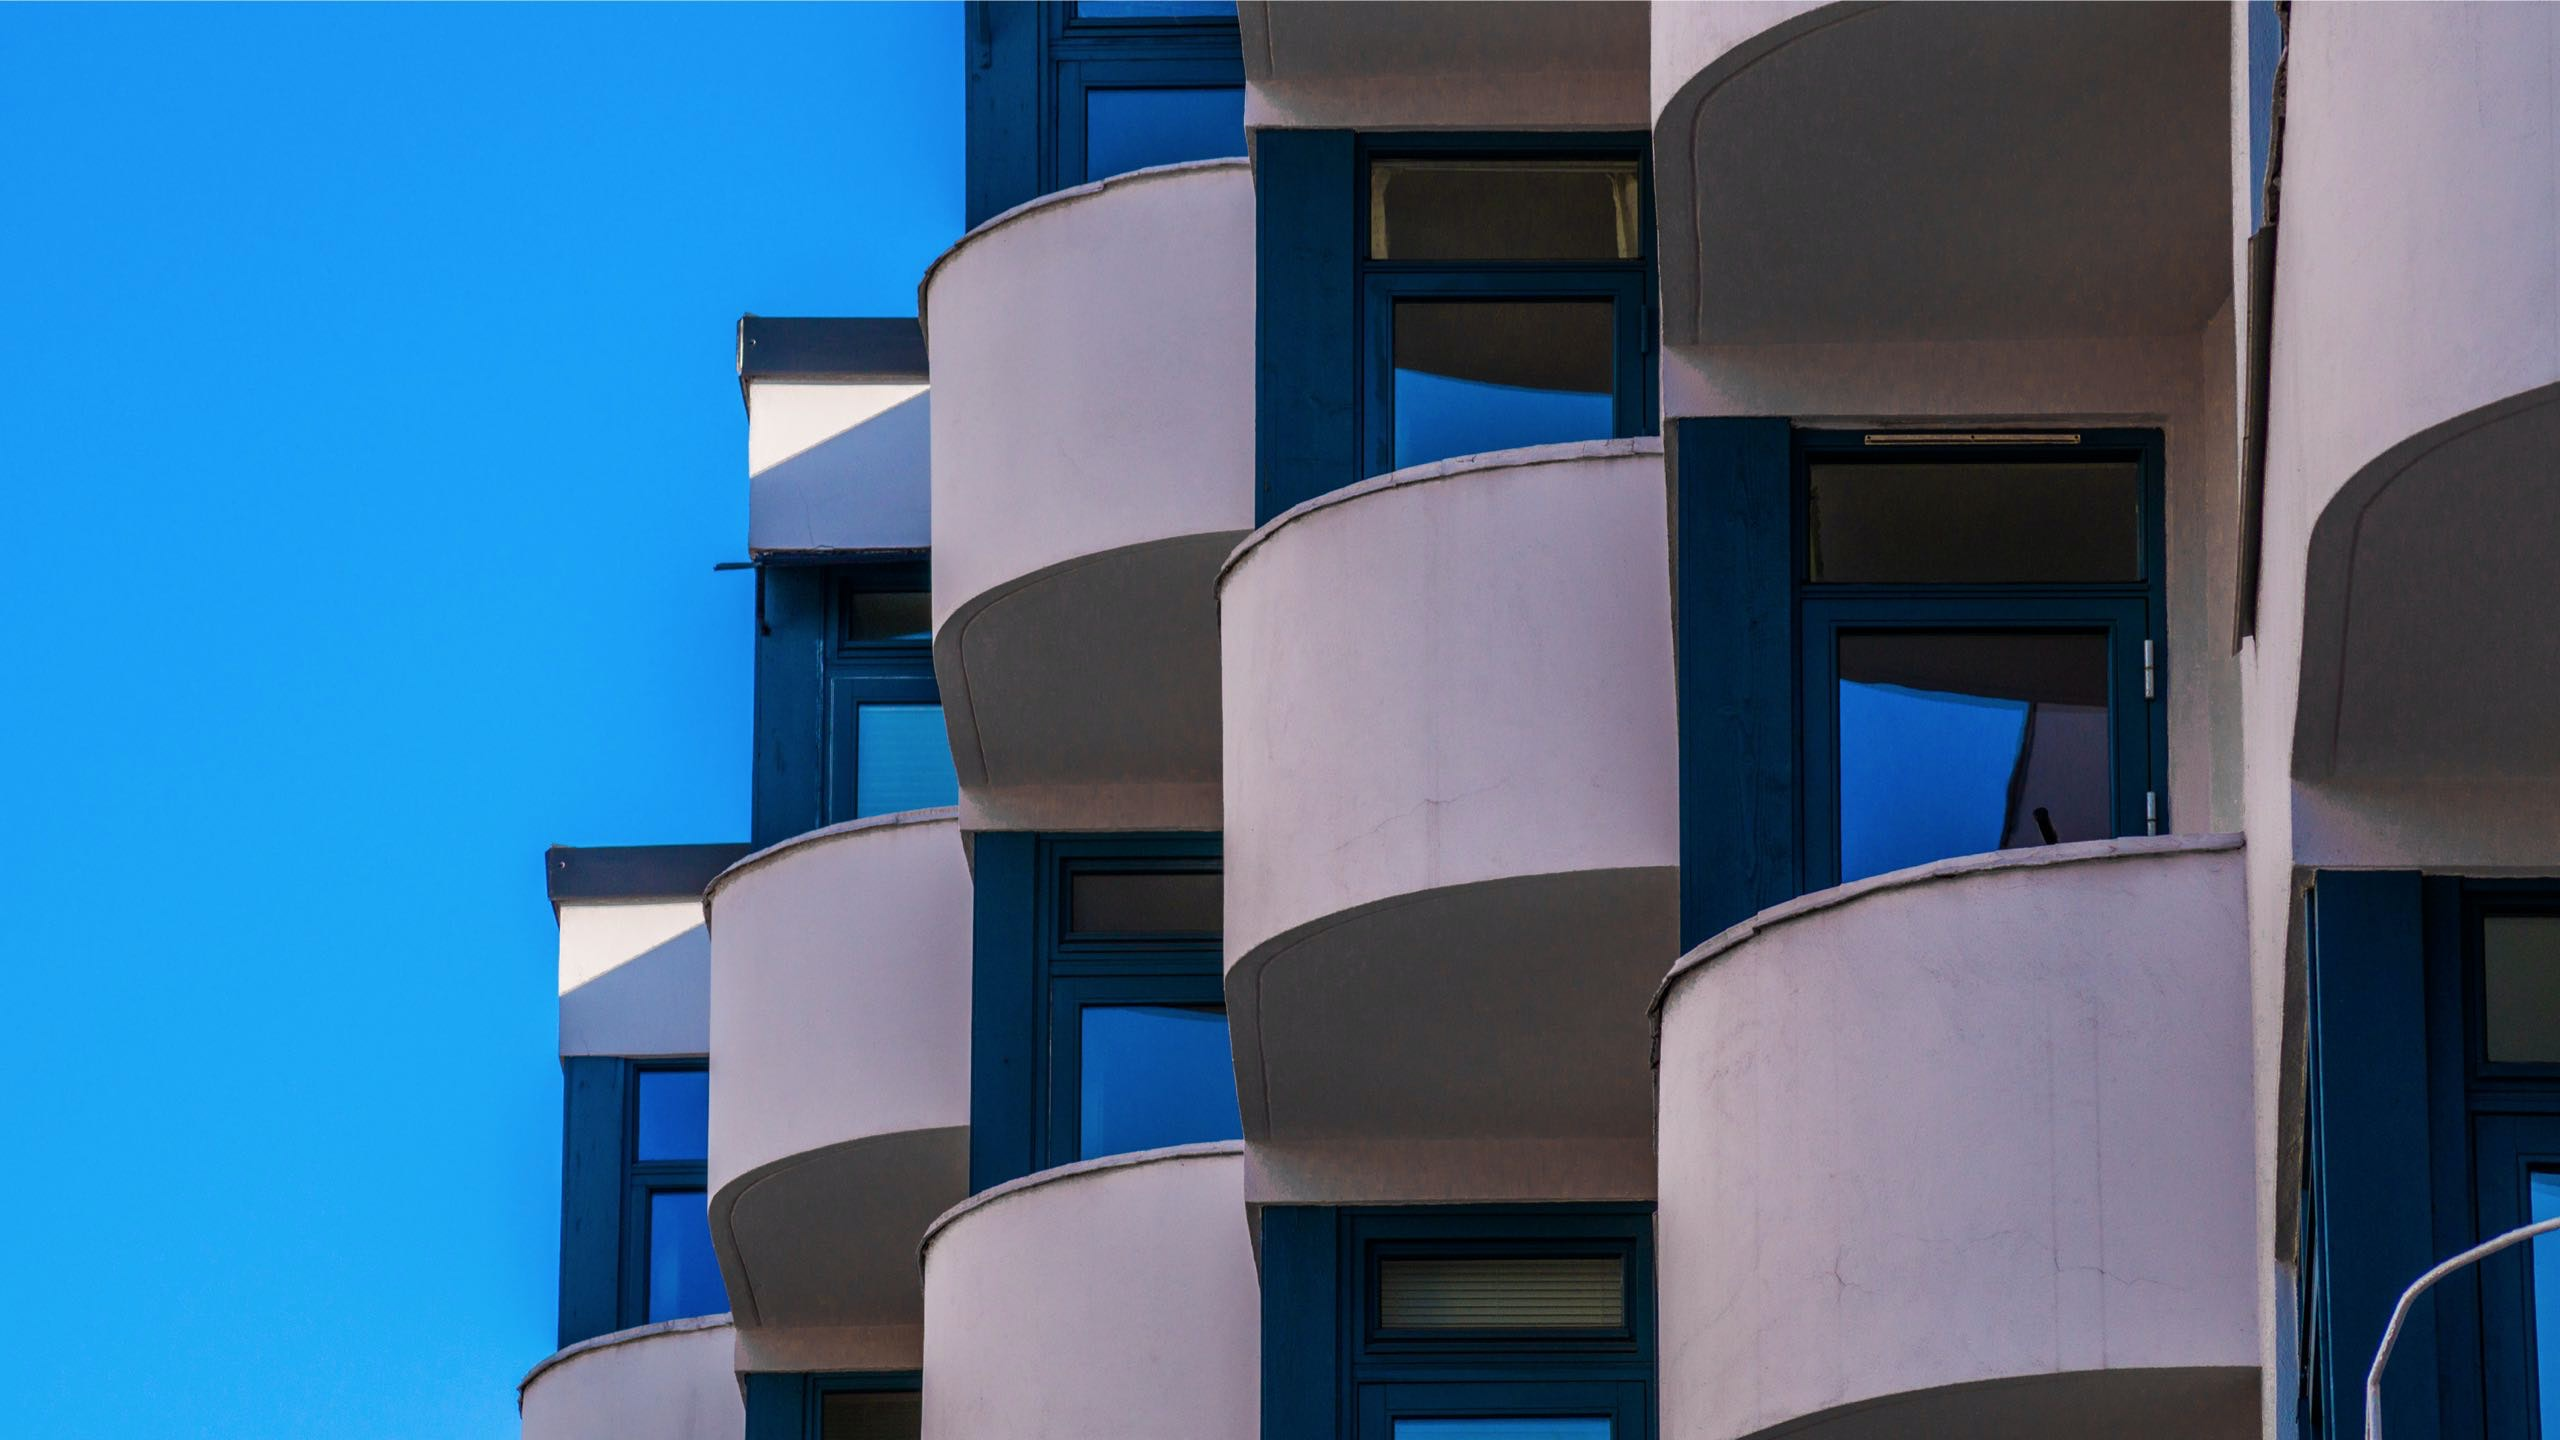 photo of white and blue concrete building